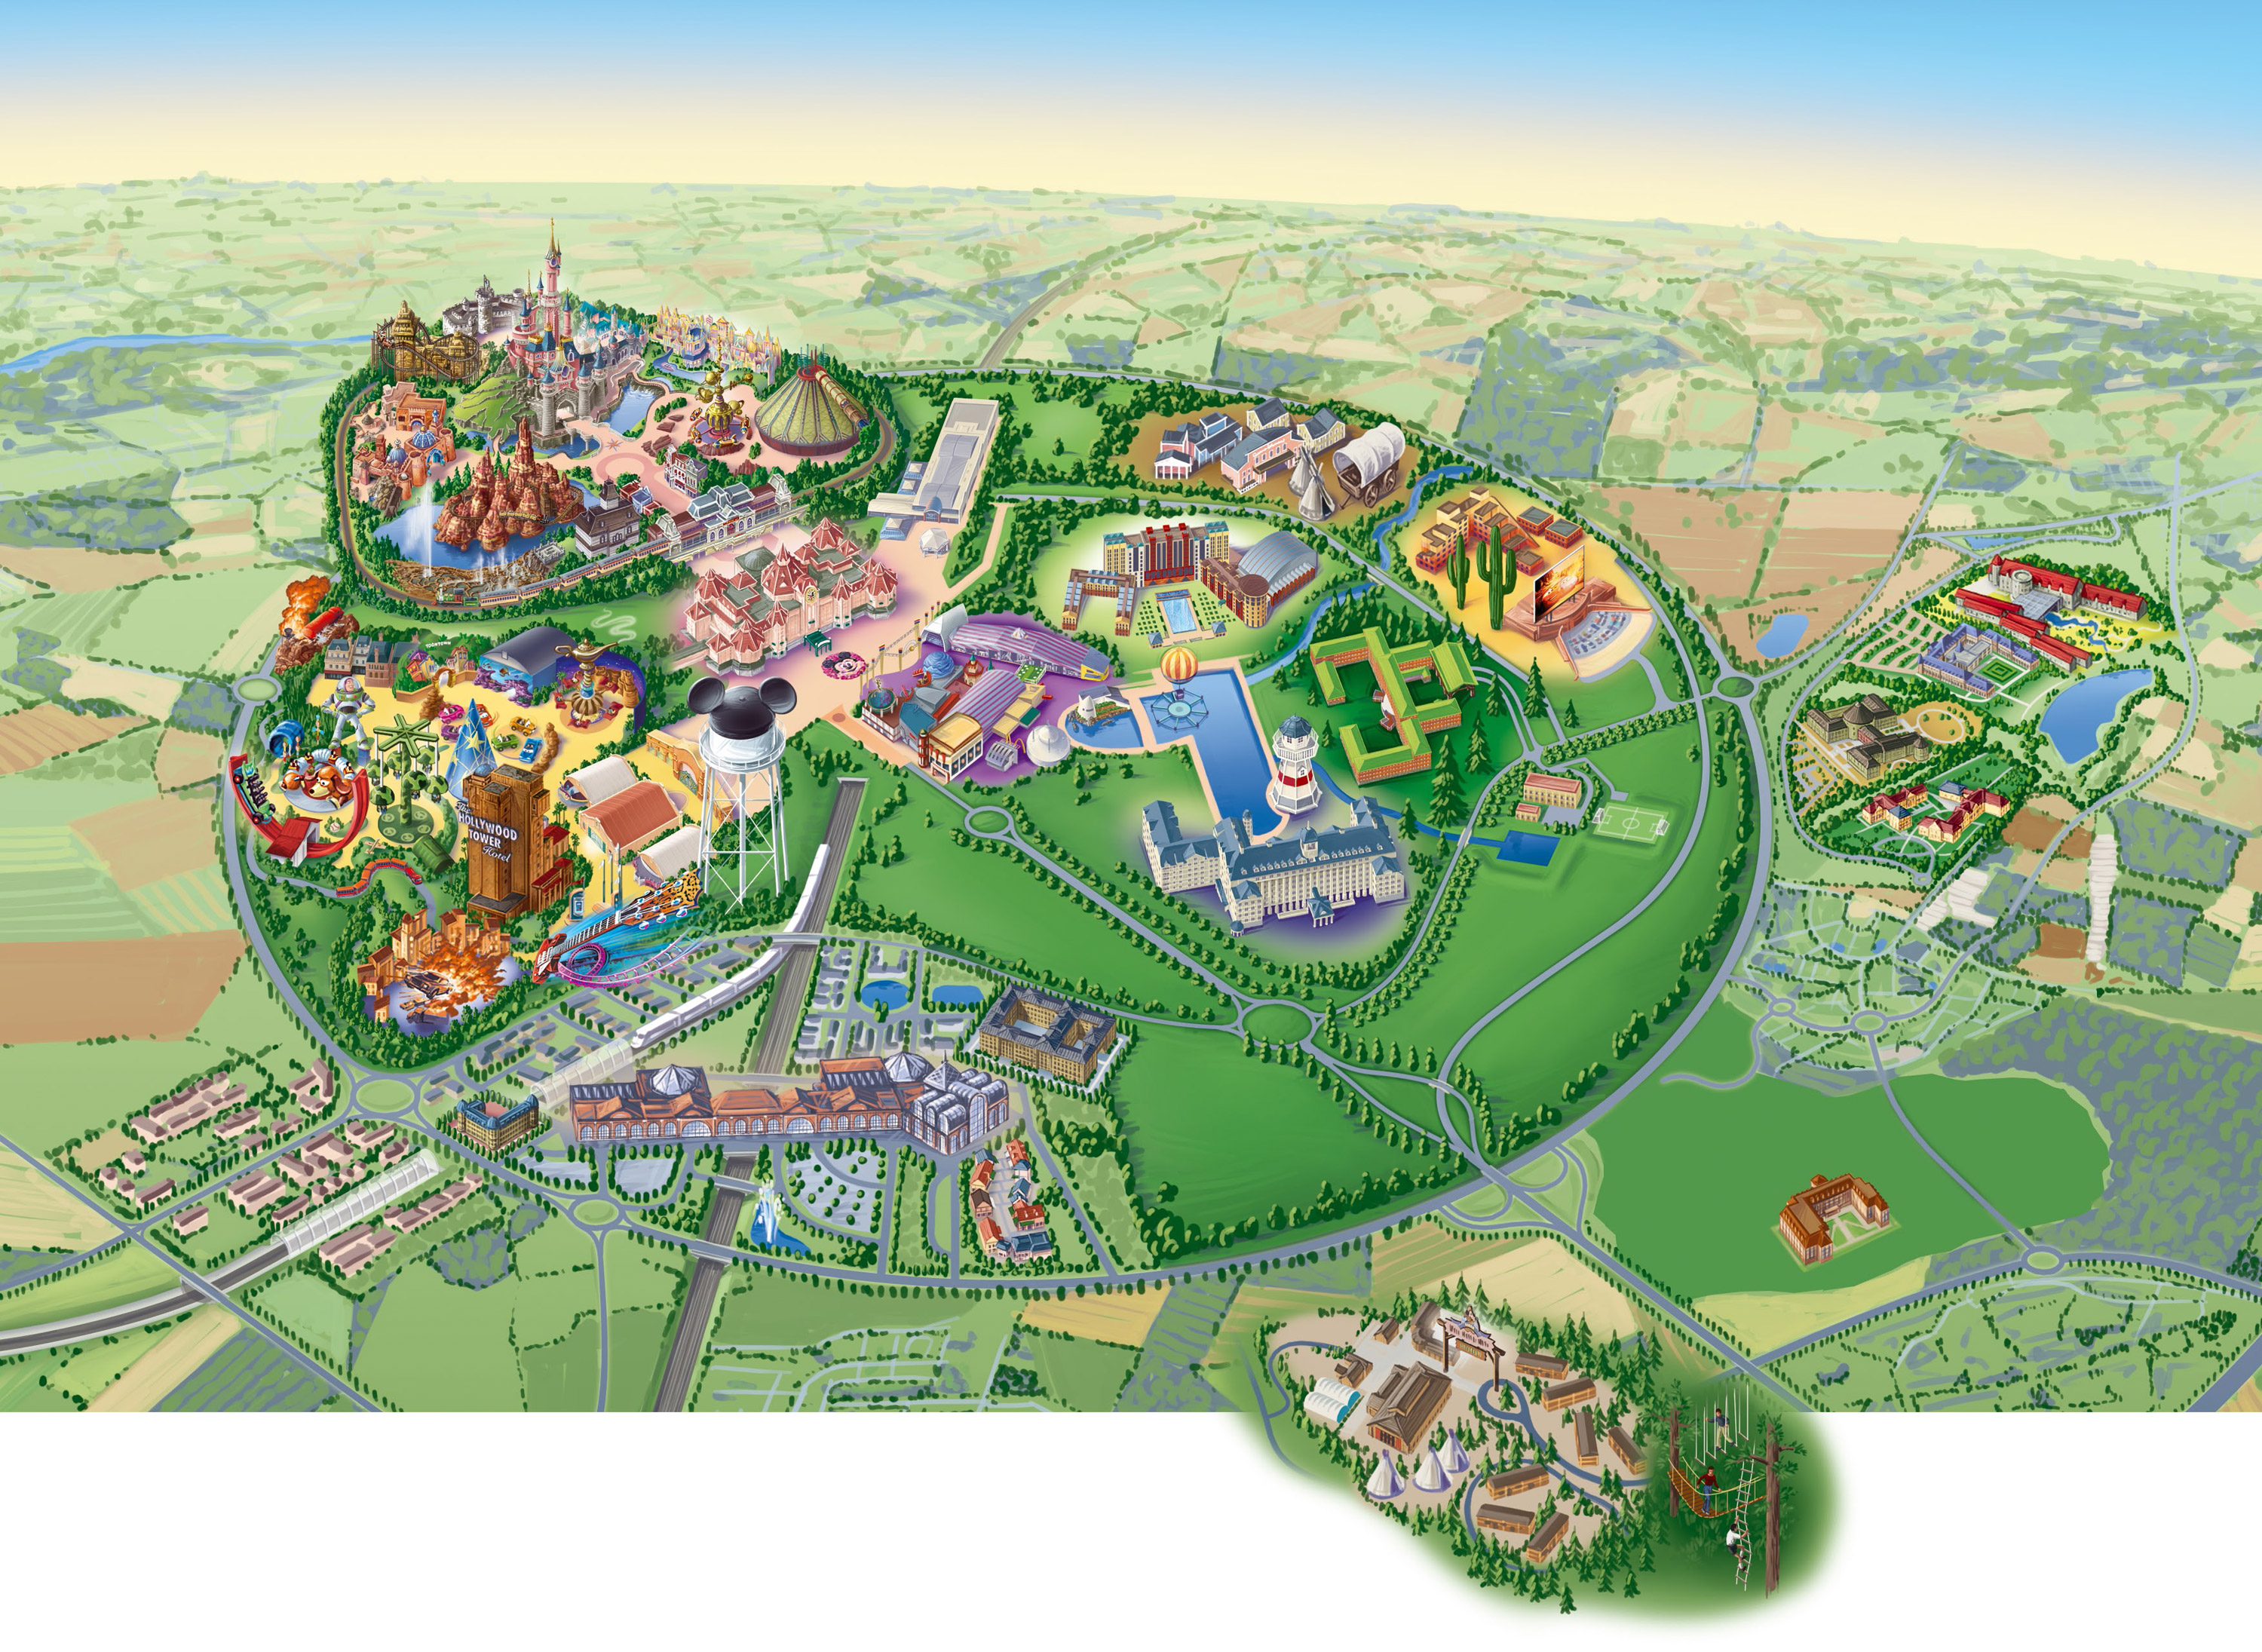 Disneyland Paris Map 2014